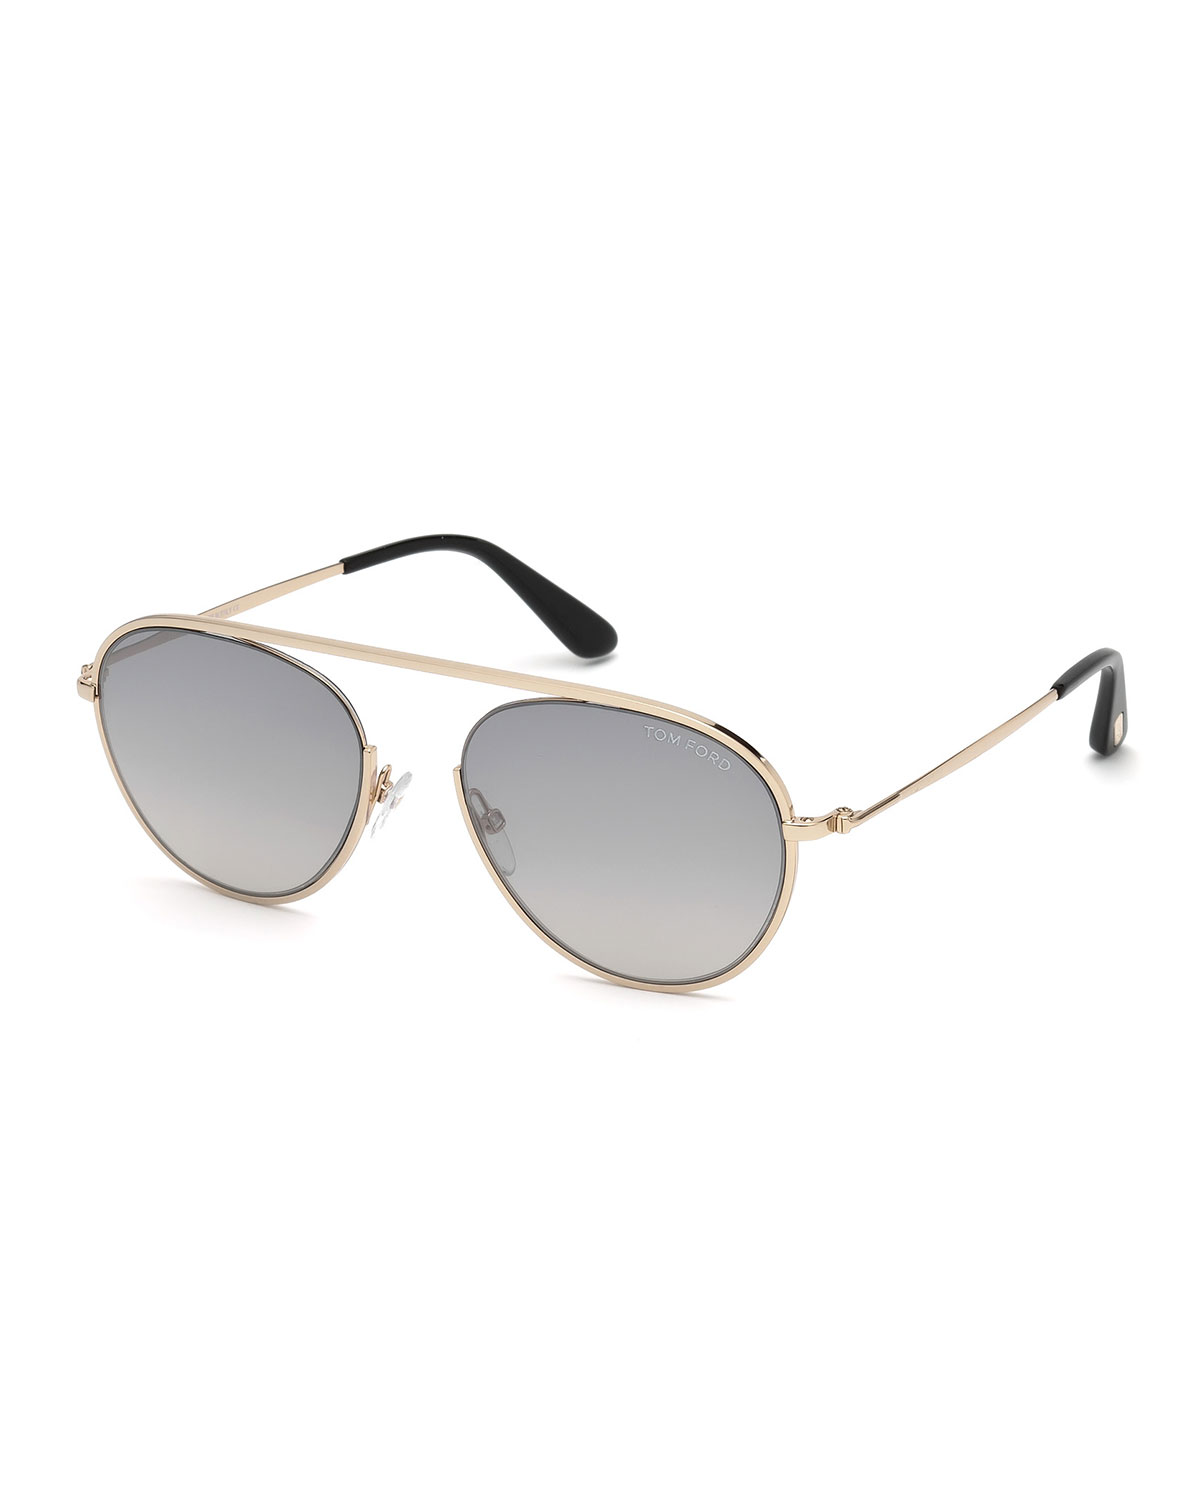 10911e51374f TOM FORD Keith Men s Round Brow-Bar Metal Sunglasses